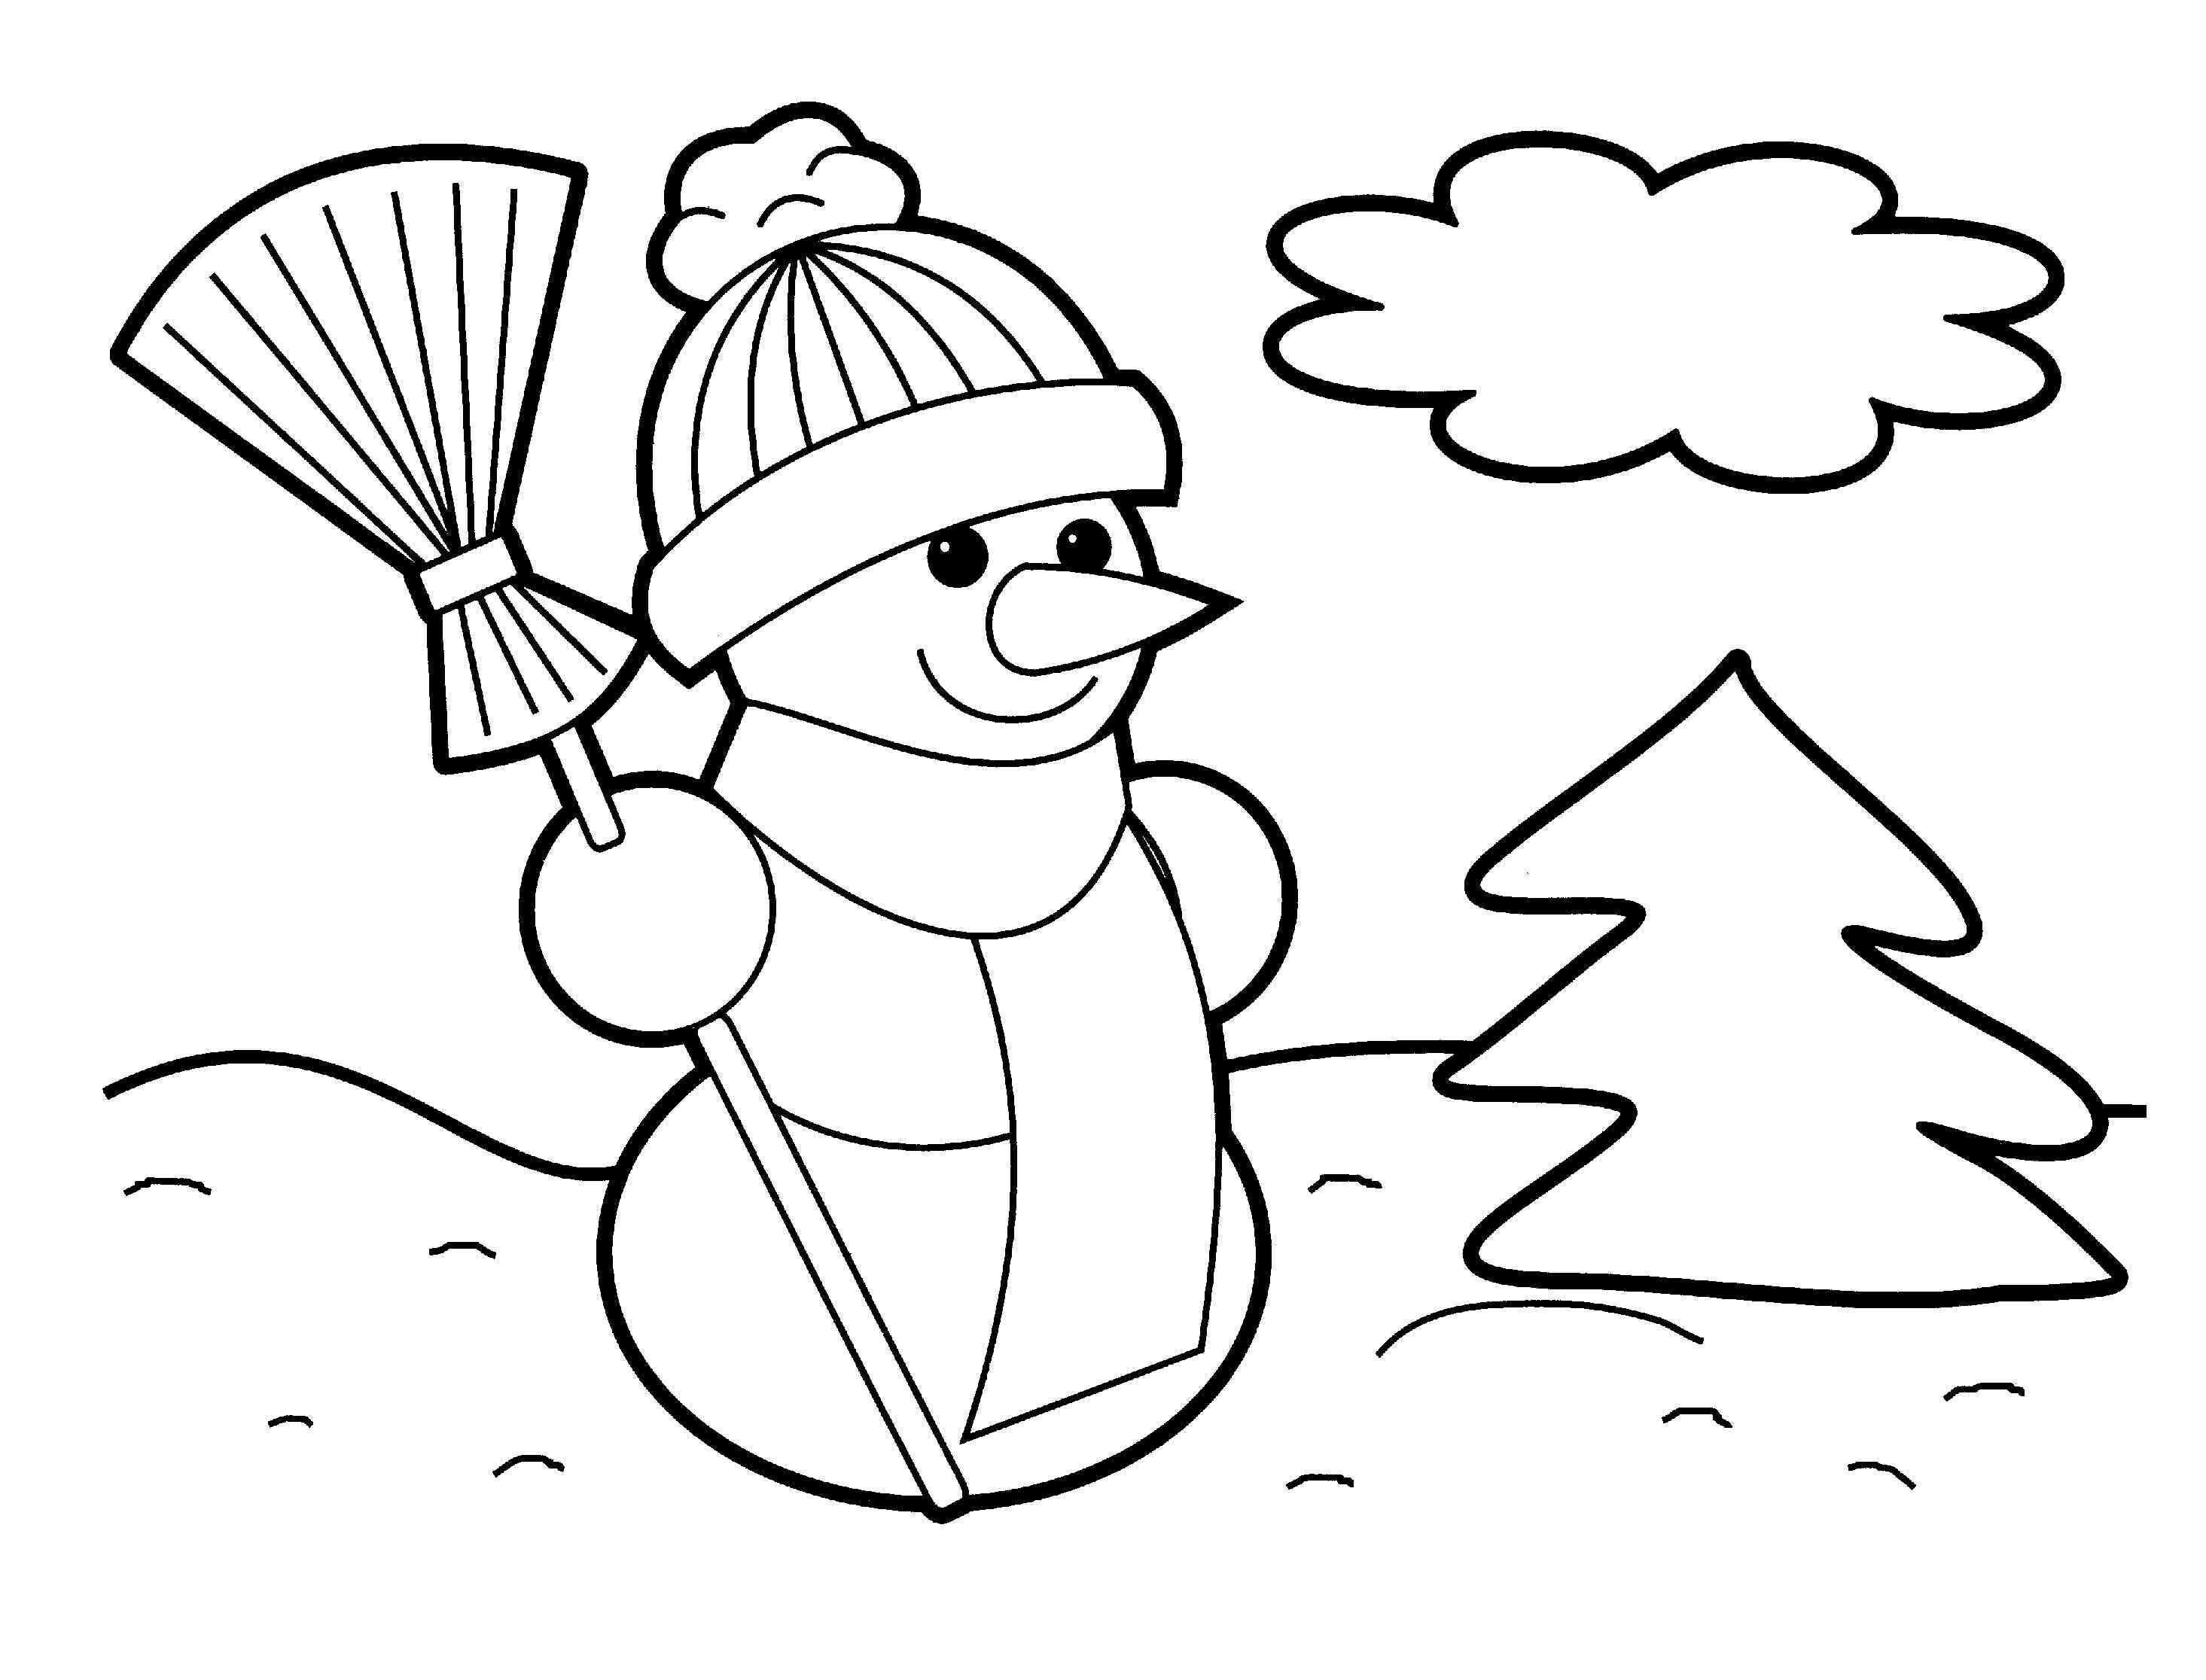 Coloring Worksheets for Preschool or Christmas Coloring Pages for Preschoolers Awesome Cool Coloring Page